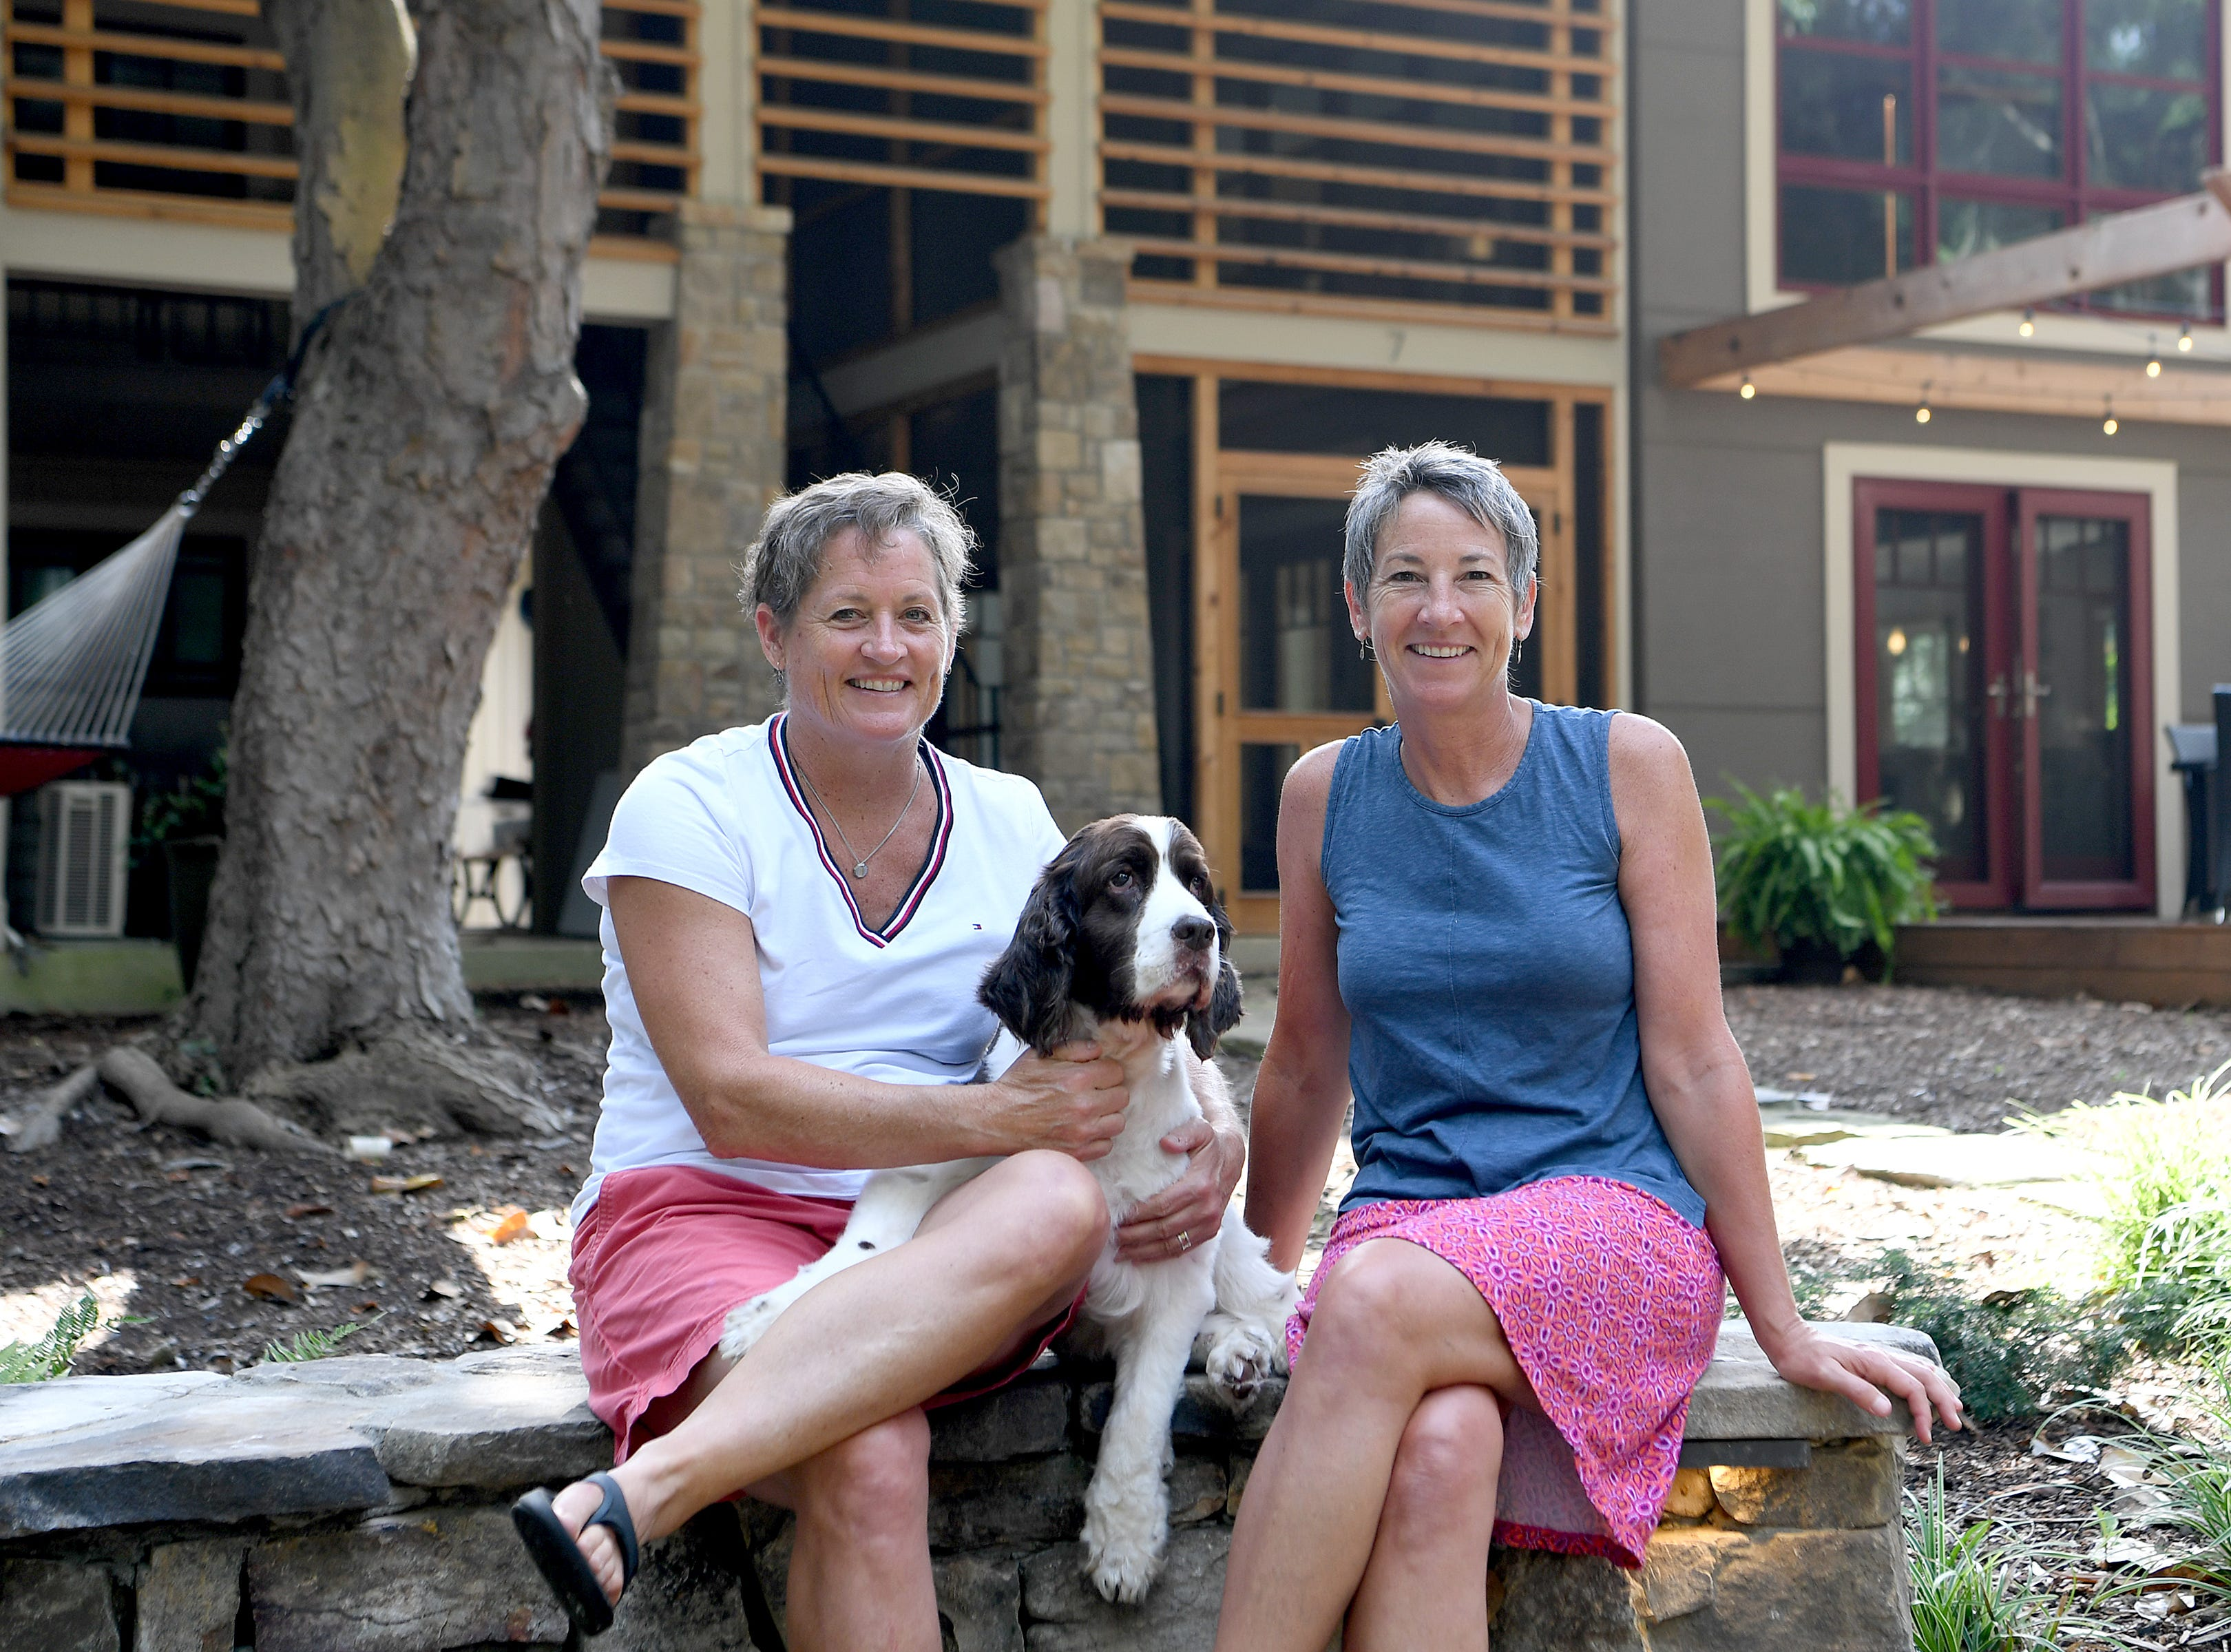 Mary Ann Myers, left, and Annie Lundahl pose with their English Springer Spaniel, Zach, outside their 1350 square-foot home that was once an apartment building in North Asheville. The couple renovated the building and moved in January of last year.